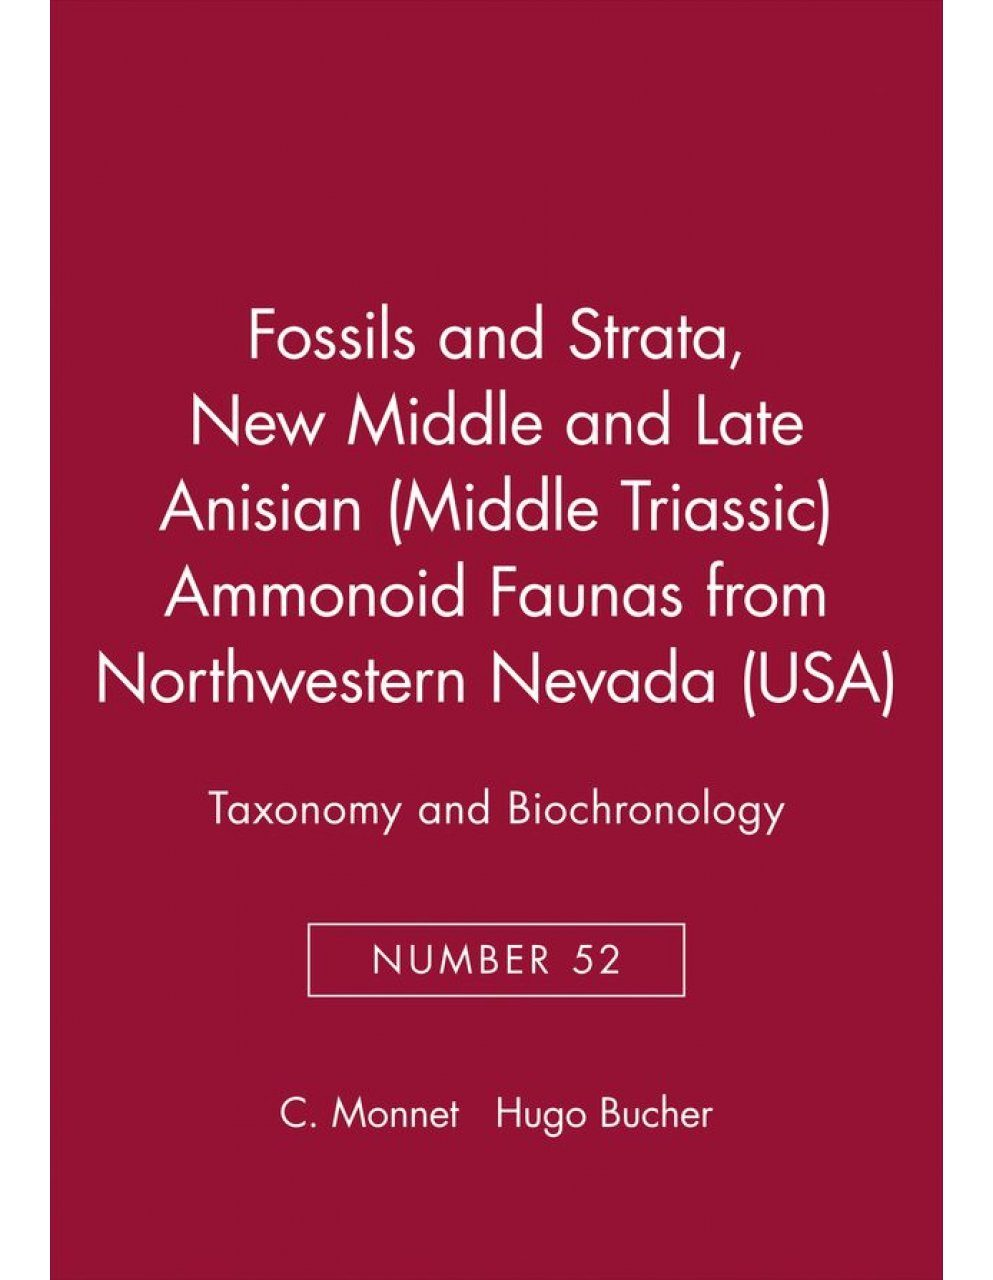 New Middle and Late Anisian (Middle Triassic) Ammonoid Faunas from Northwestern Nevada (USA)